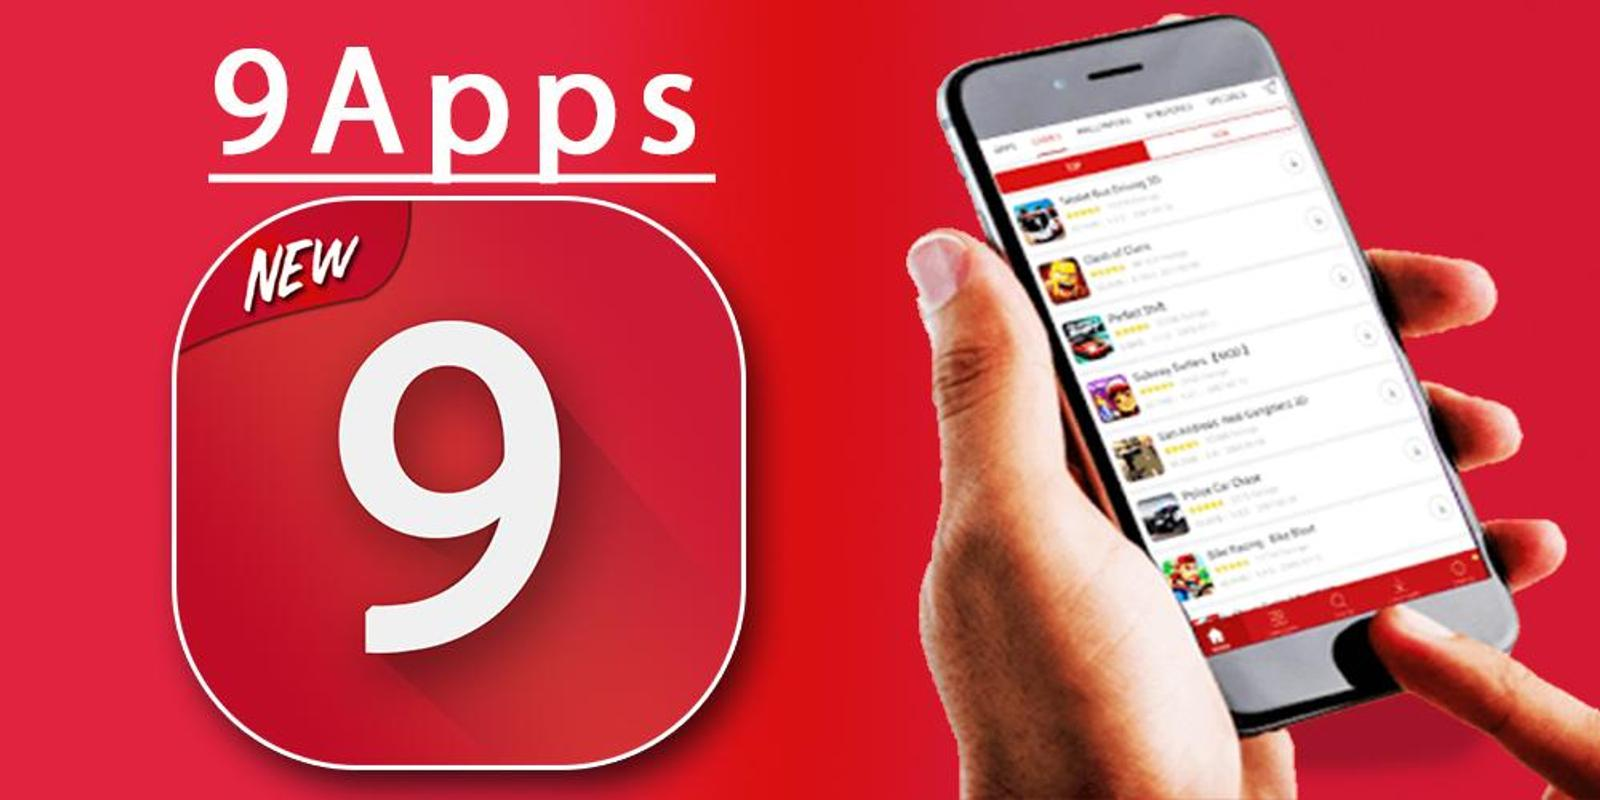 9Appsfast download